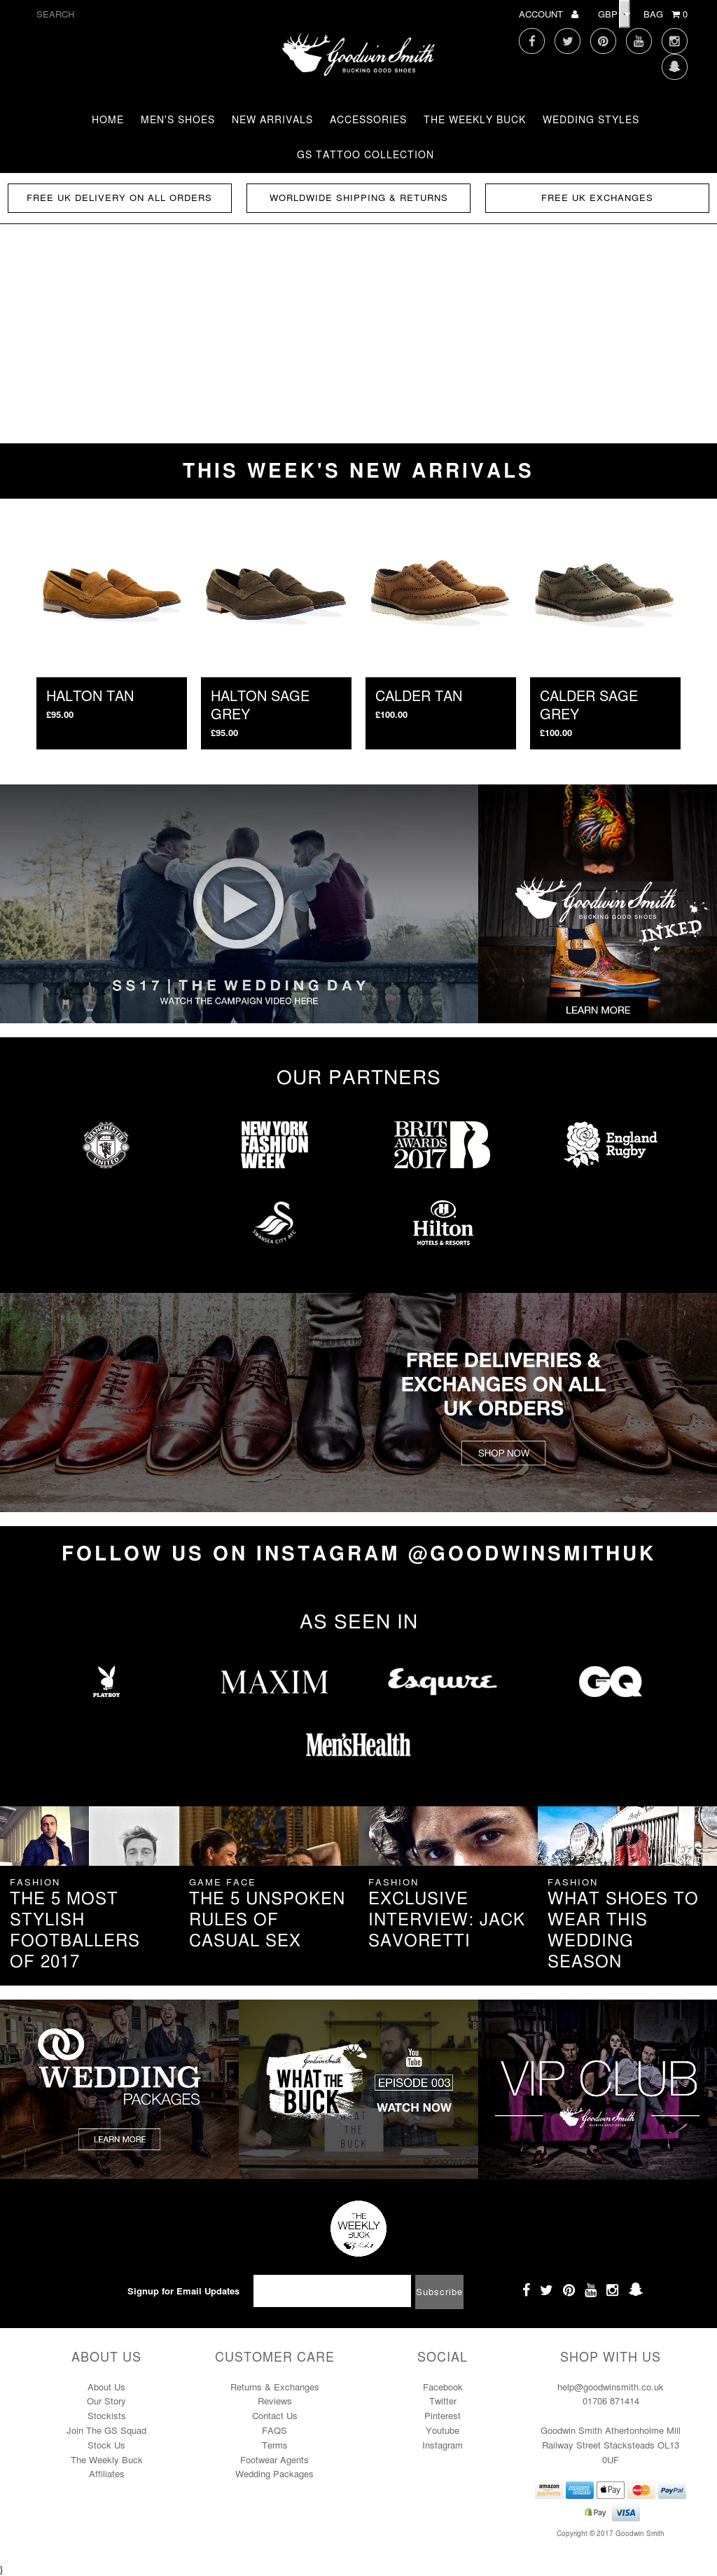 Goodwinsmith Website History